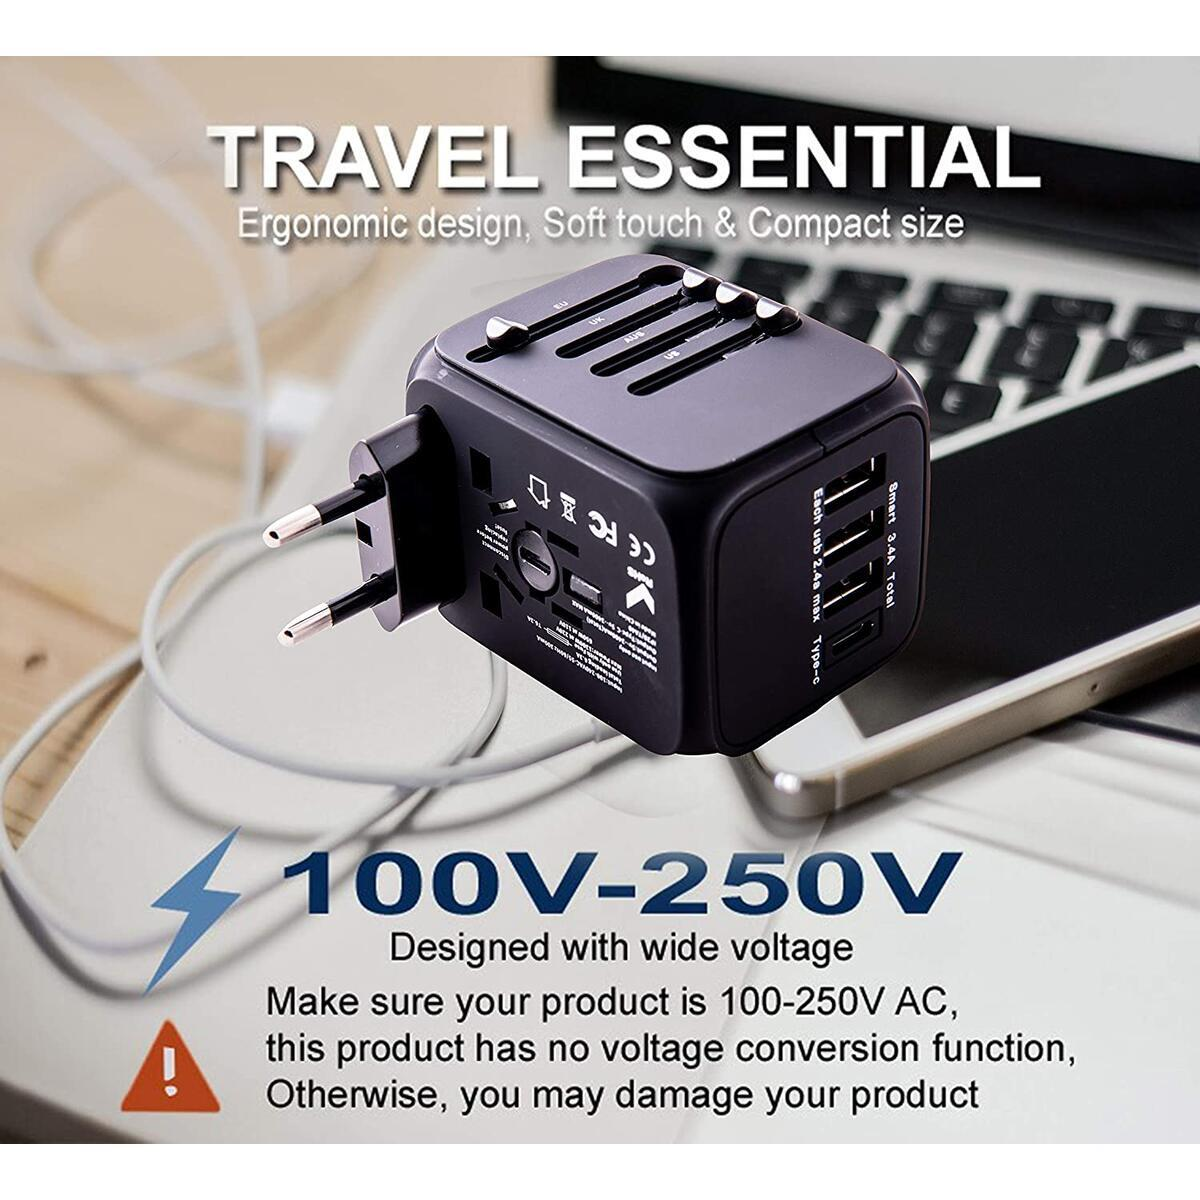 Universal Travel Adapter with 3 USB ports and 1 Type-C